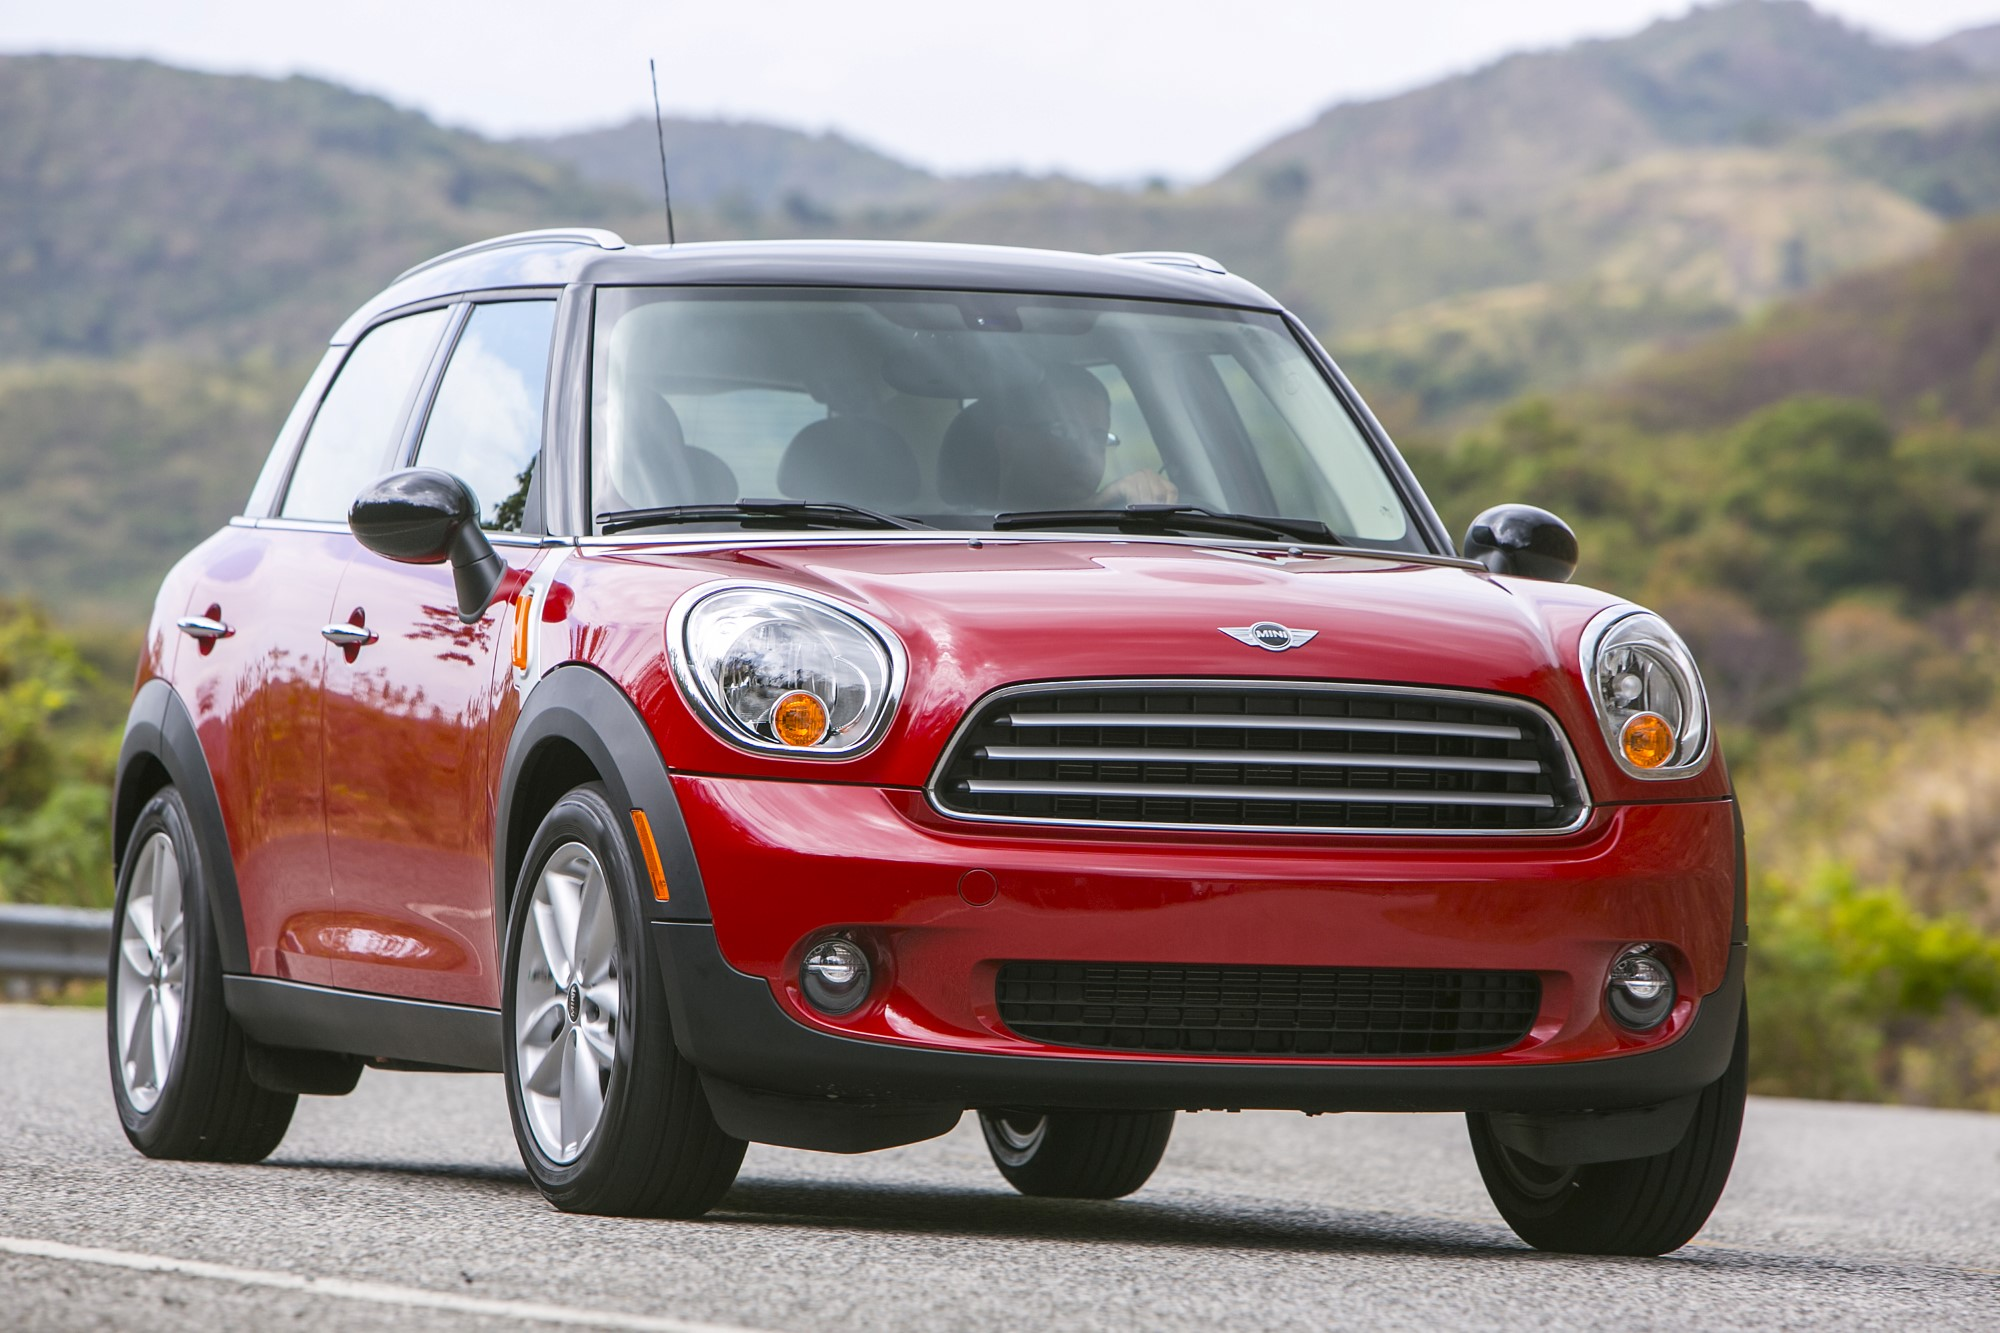 Iihs Small Car Crash Test Results Mini Earns The Only Good Fiat Nissan Mazda Graded Poor